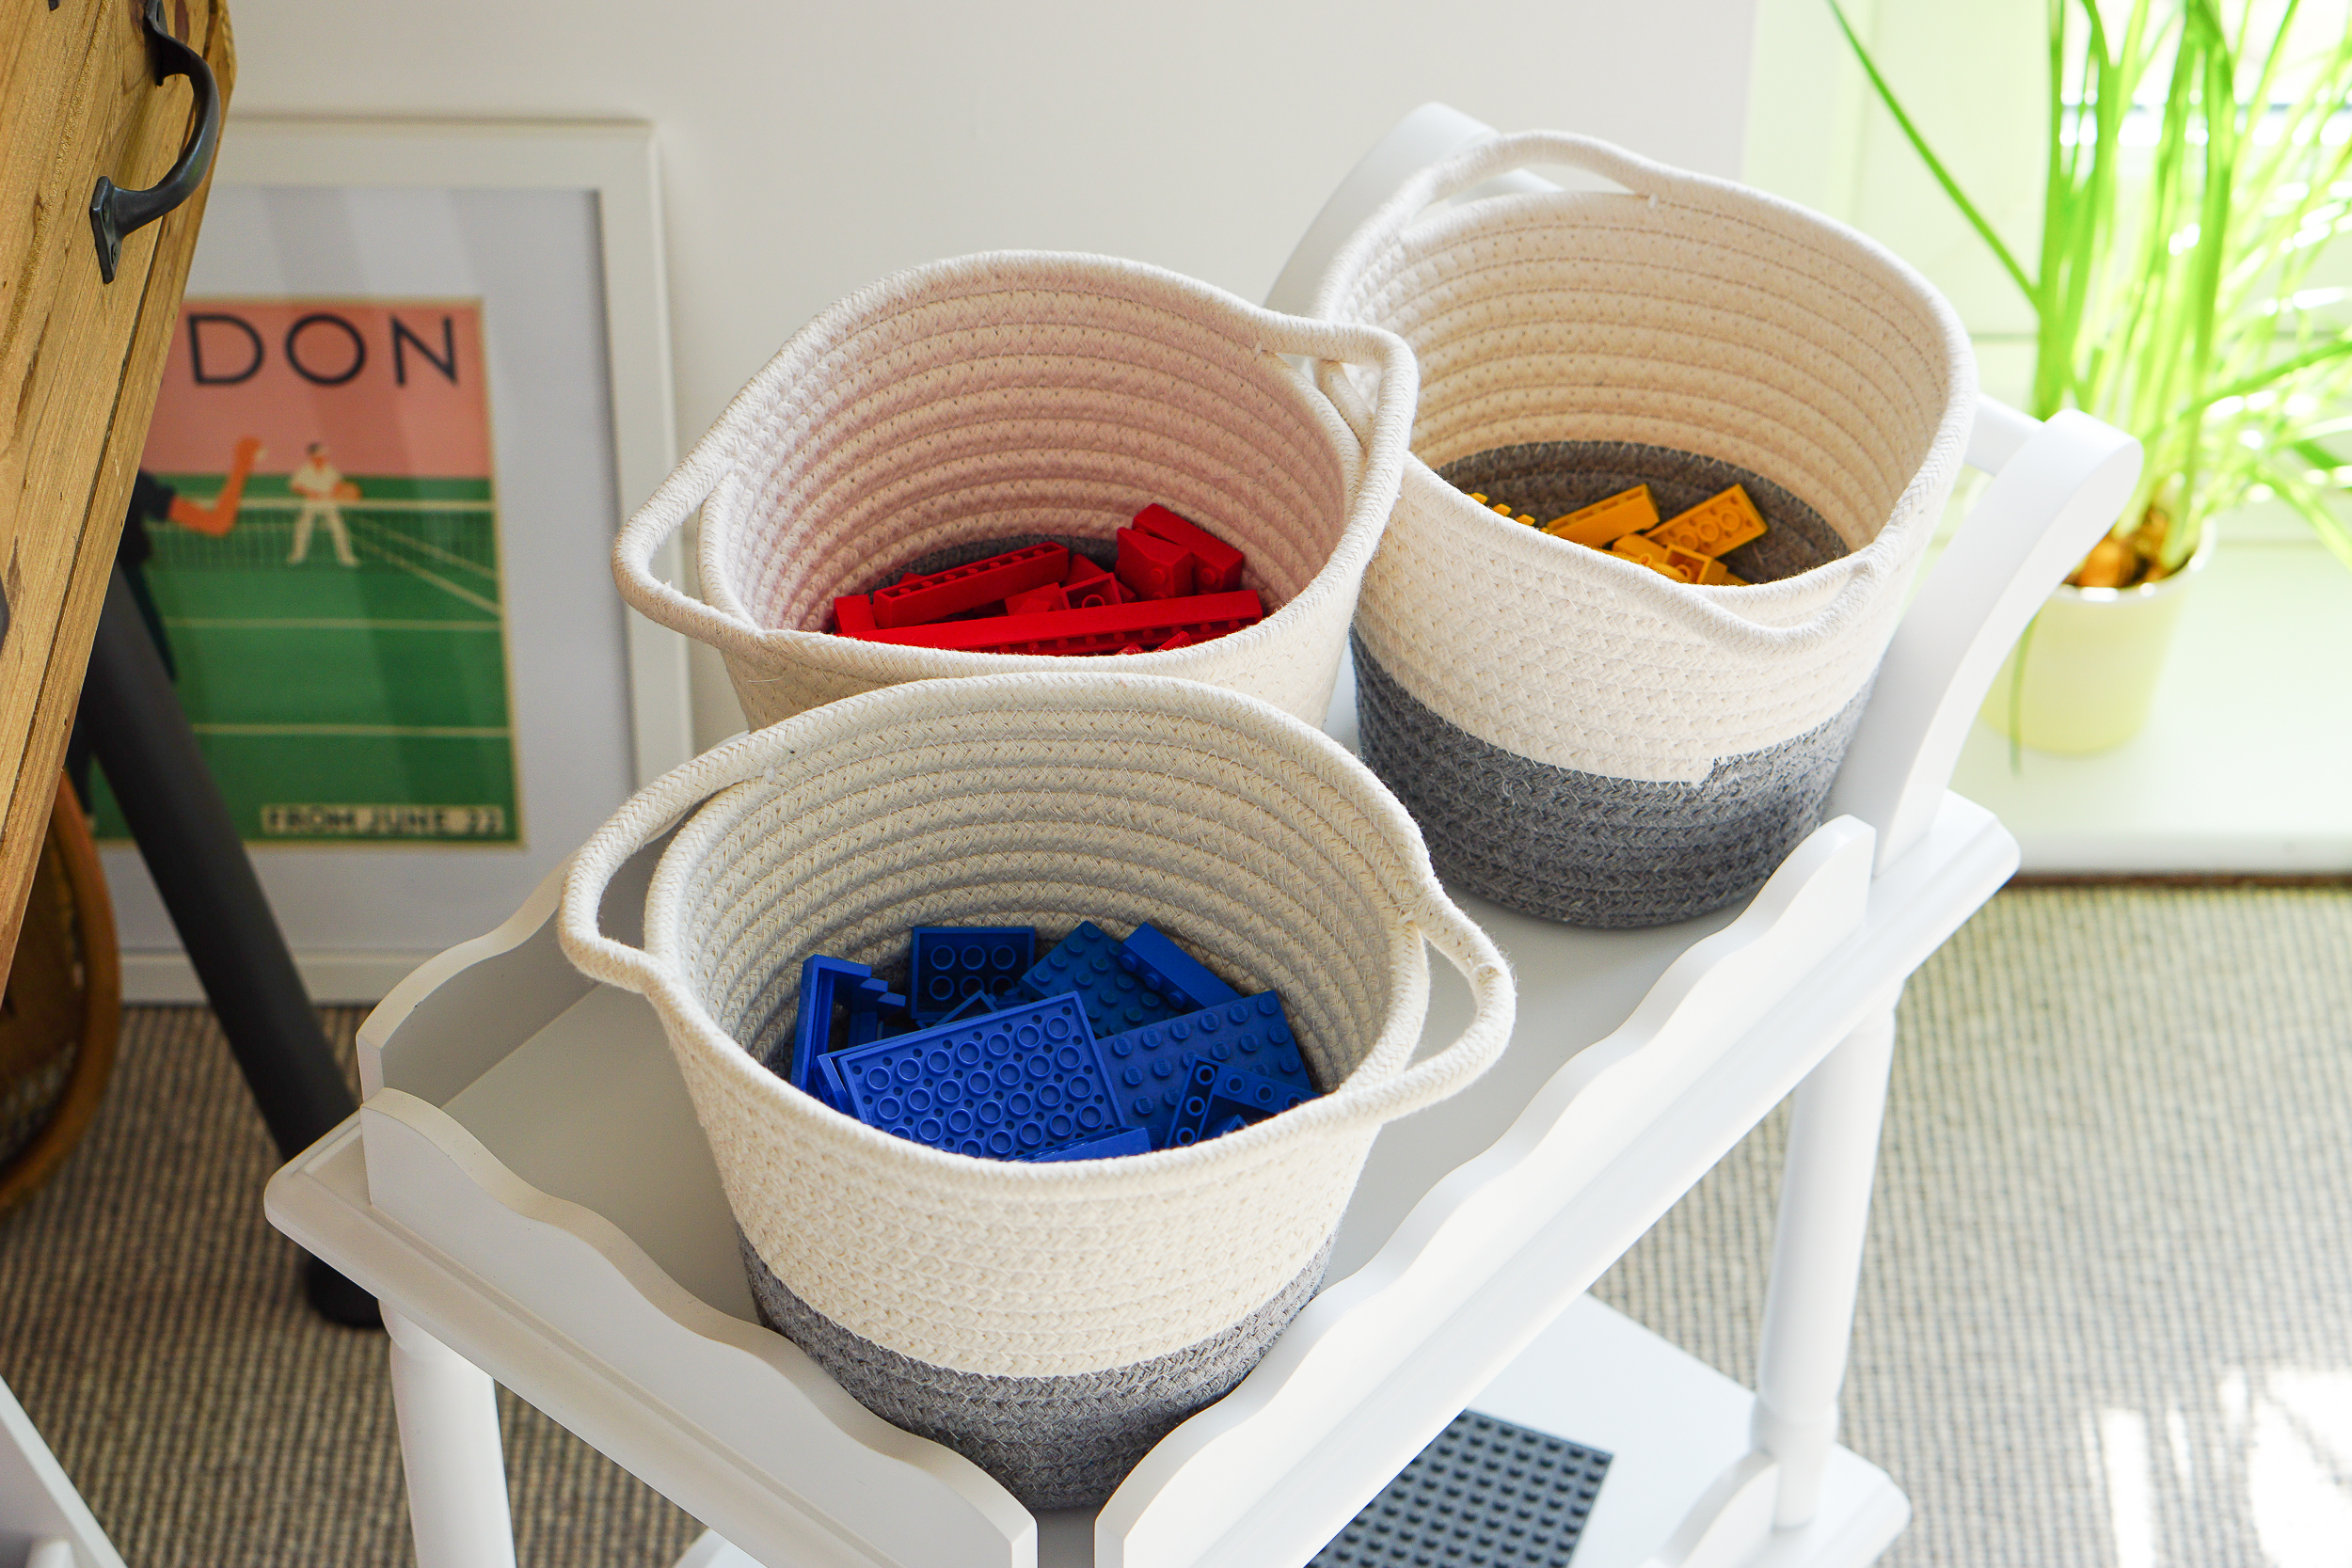 Ten ways to use GLTC's seriously cute storage baskets